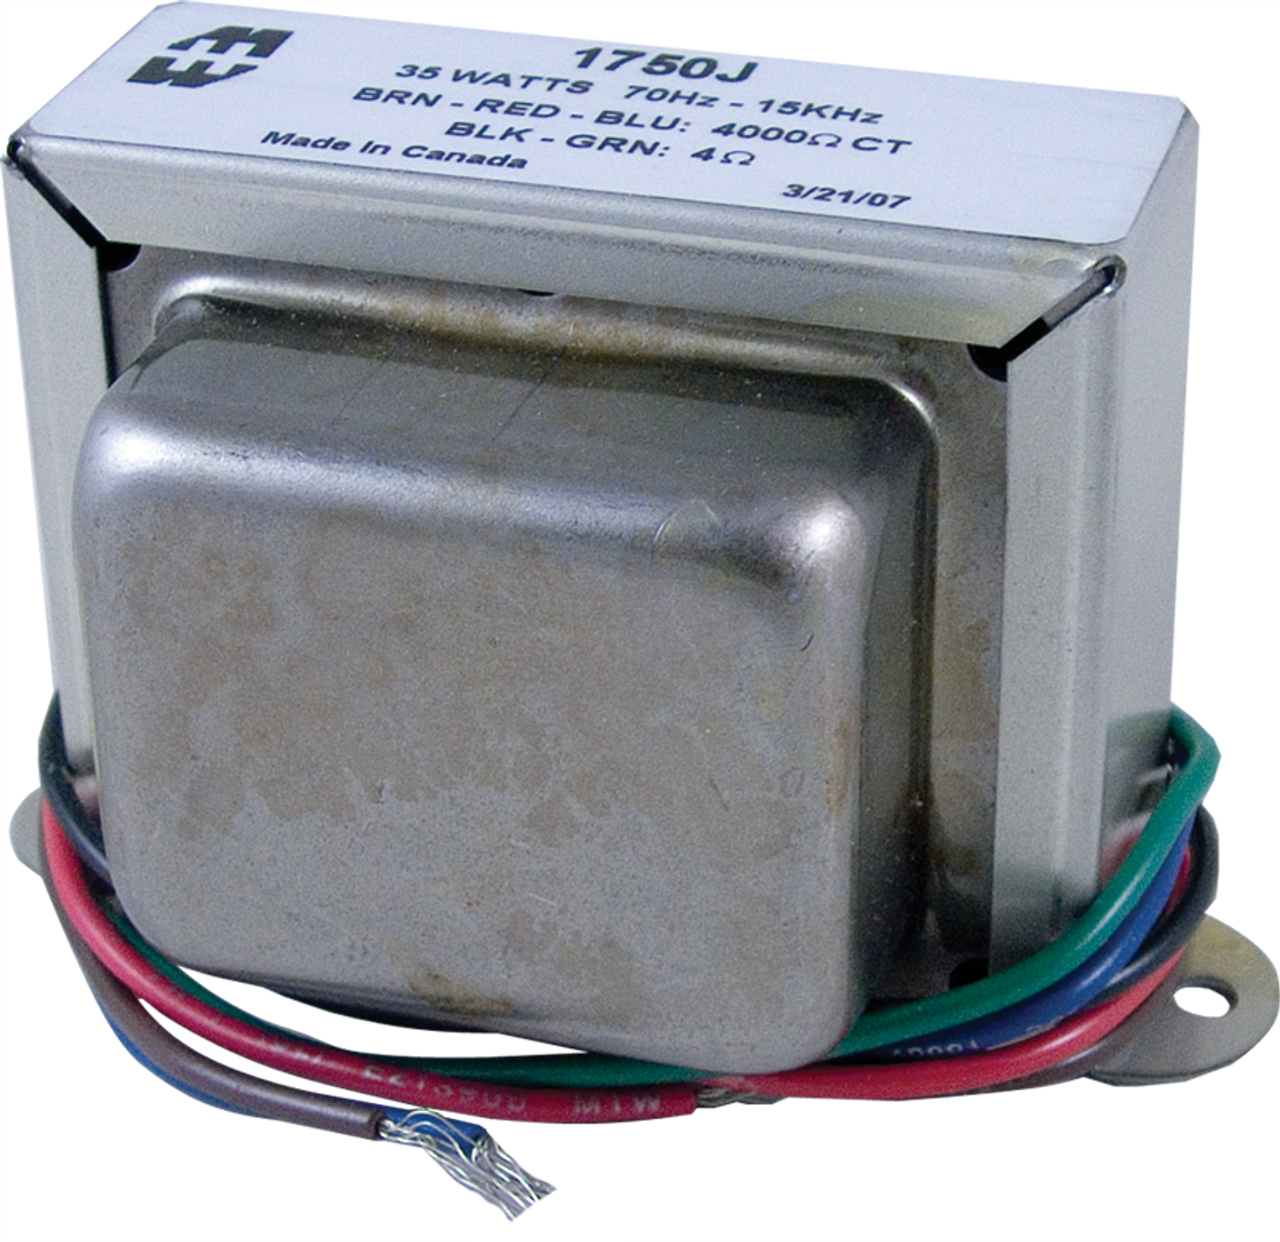 Hammond 1750J - Output Transformer